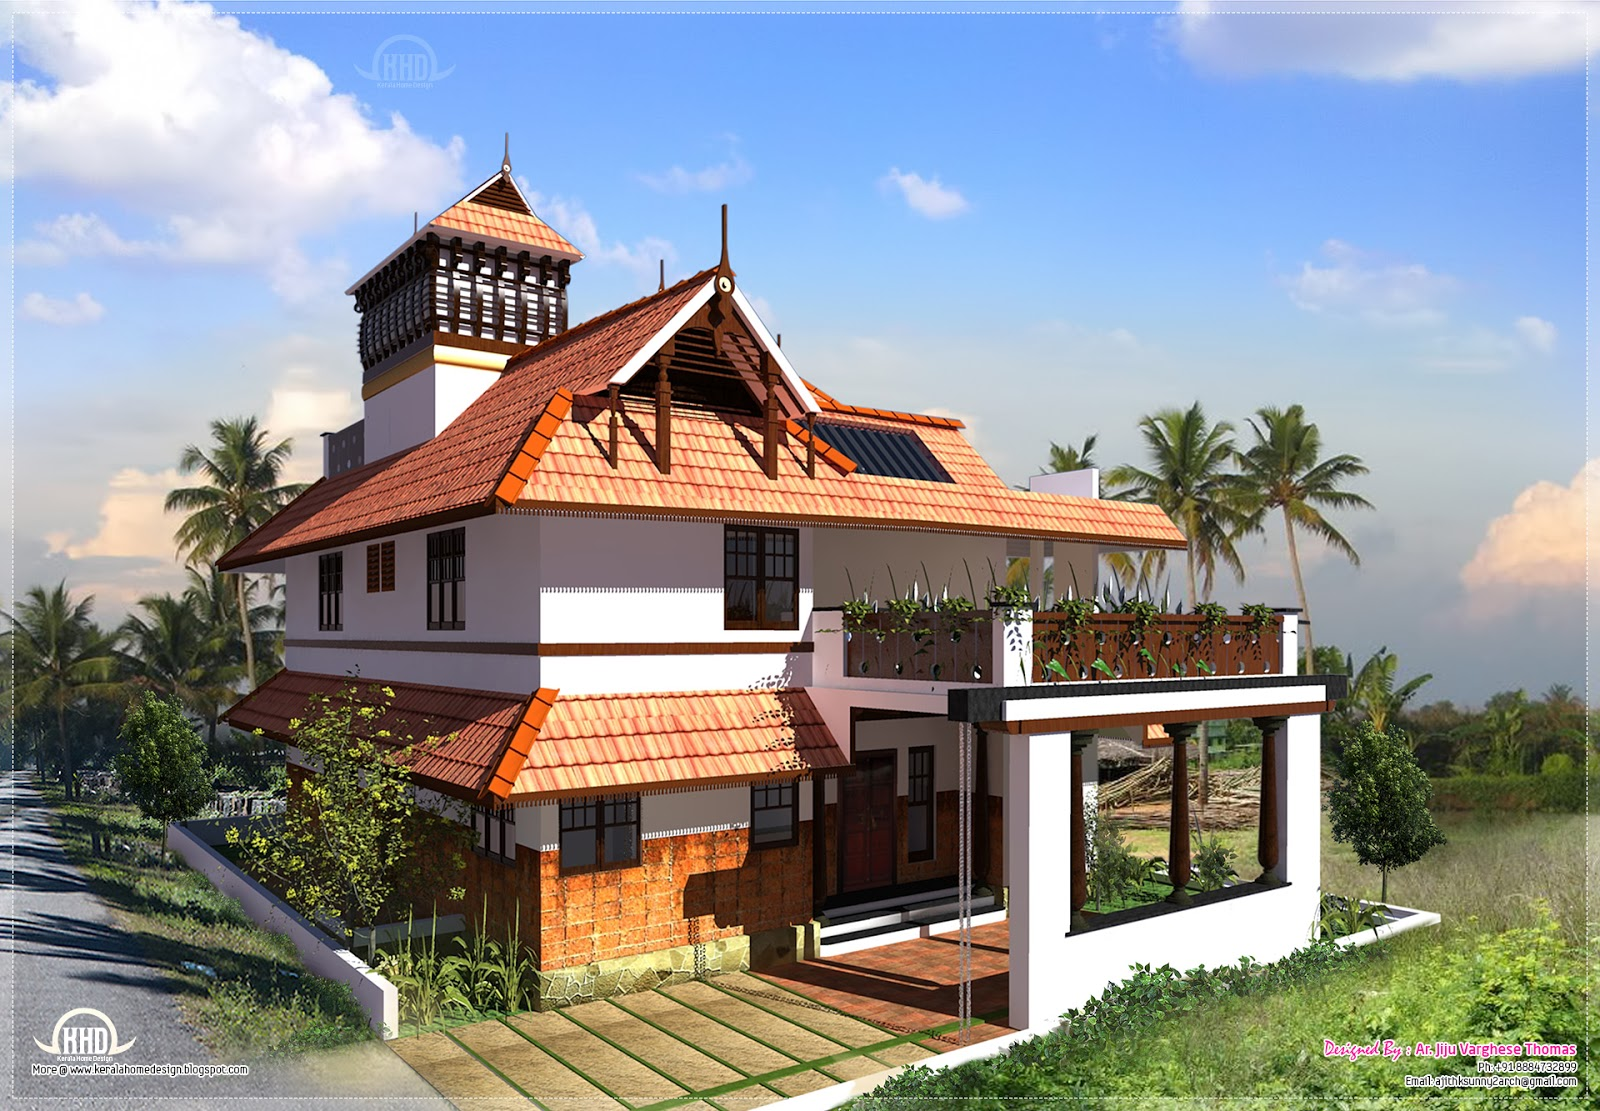 Kerala traditional house plans design joy studio design for Kerala style home